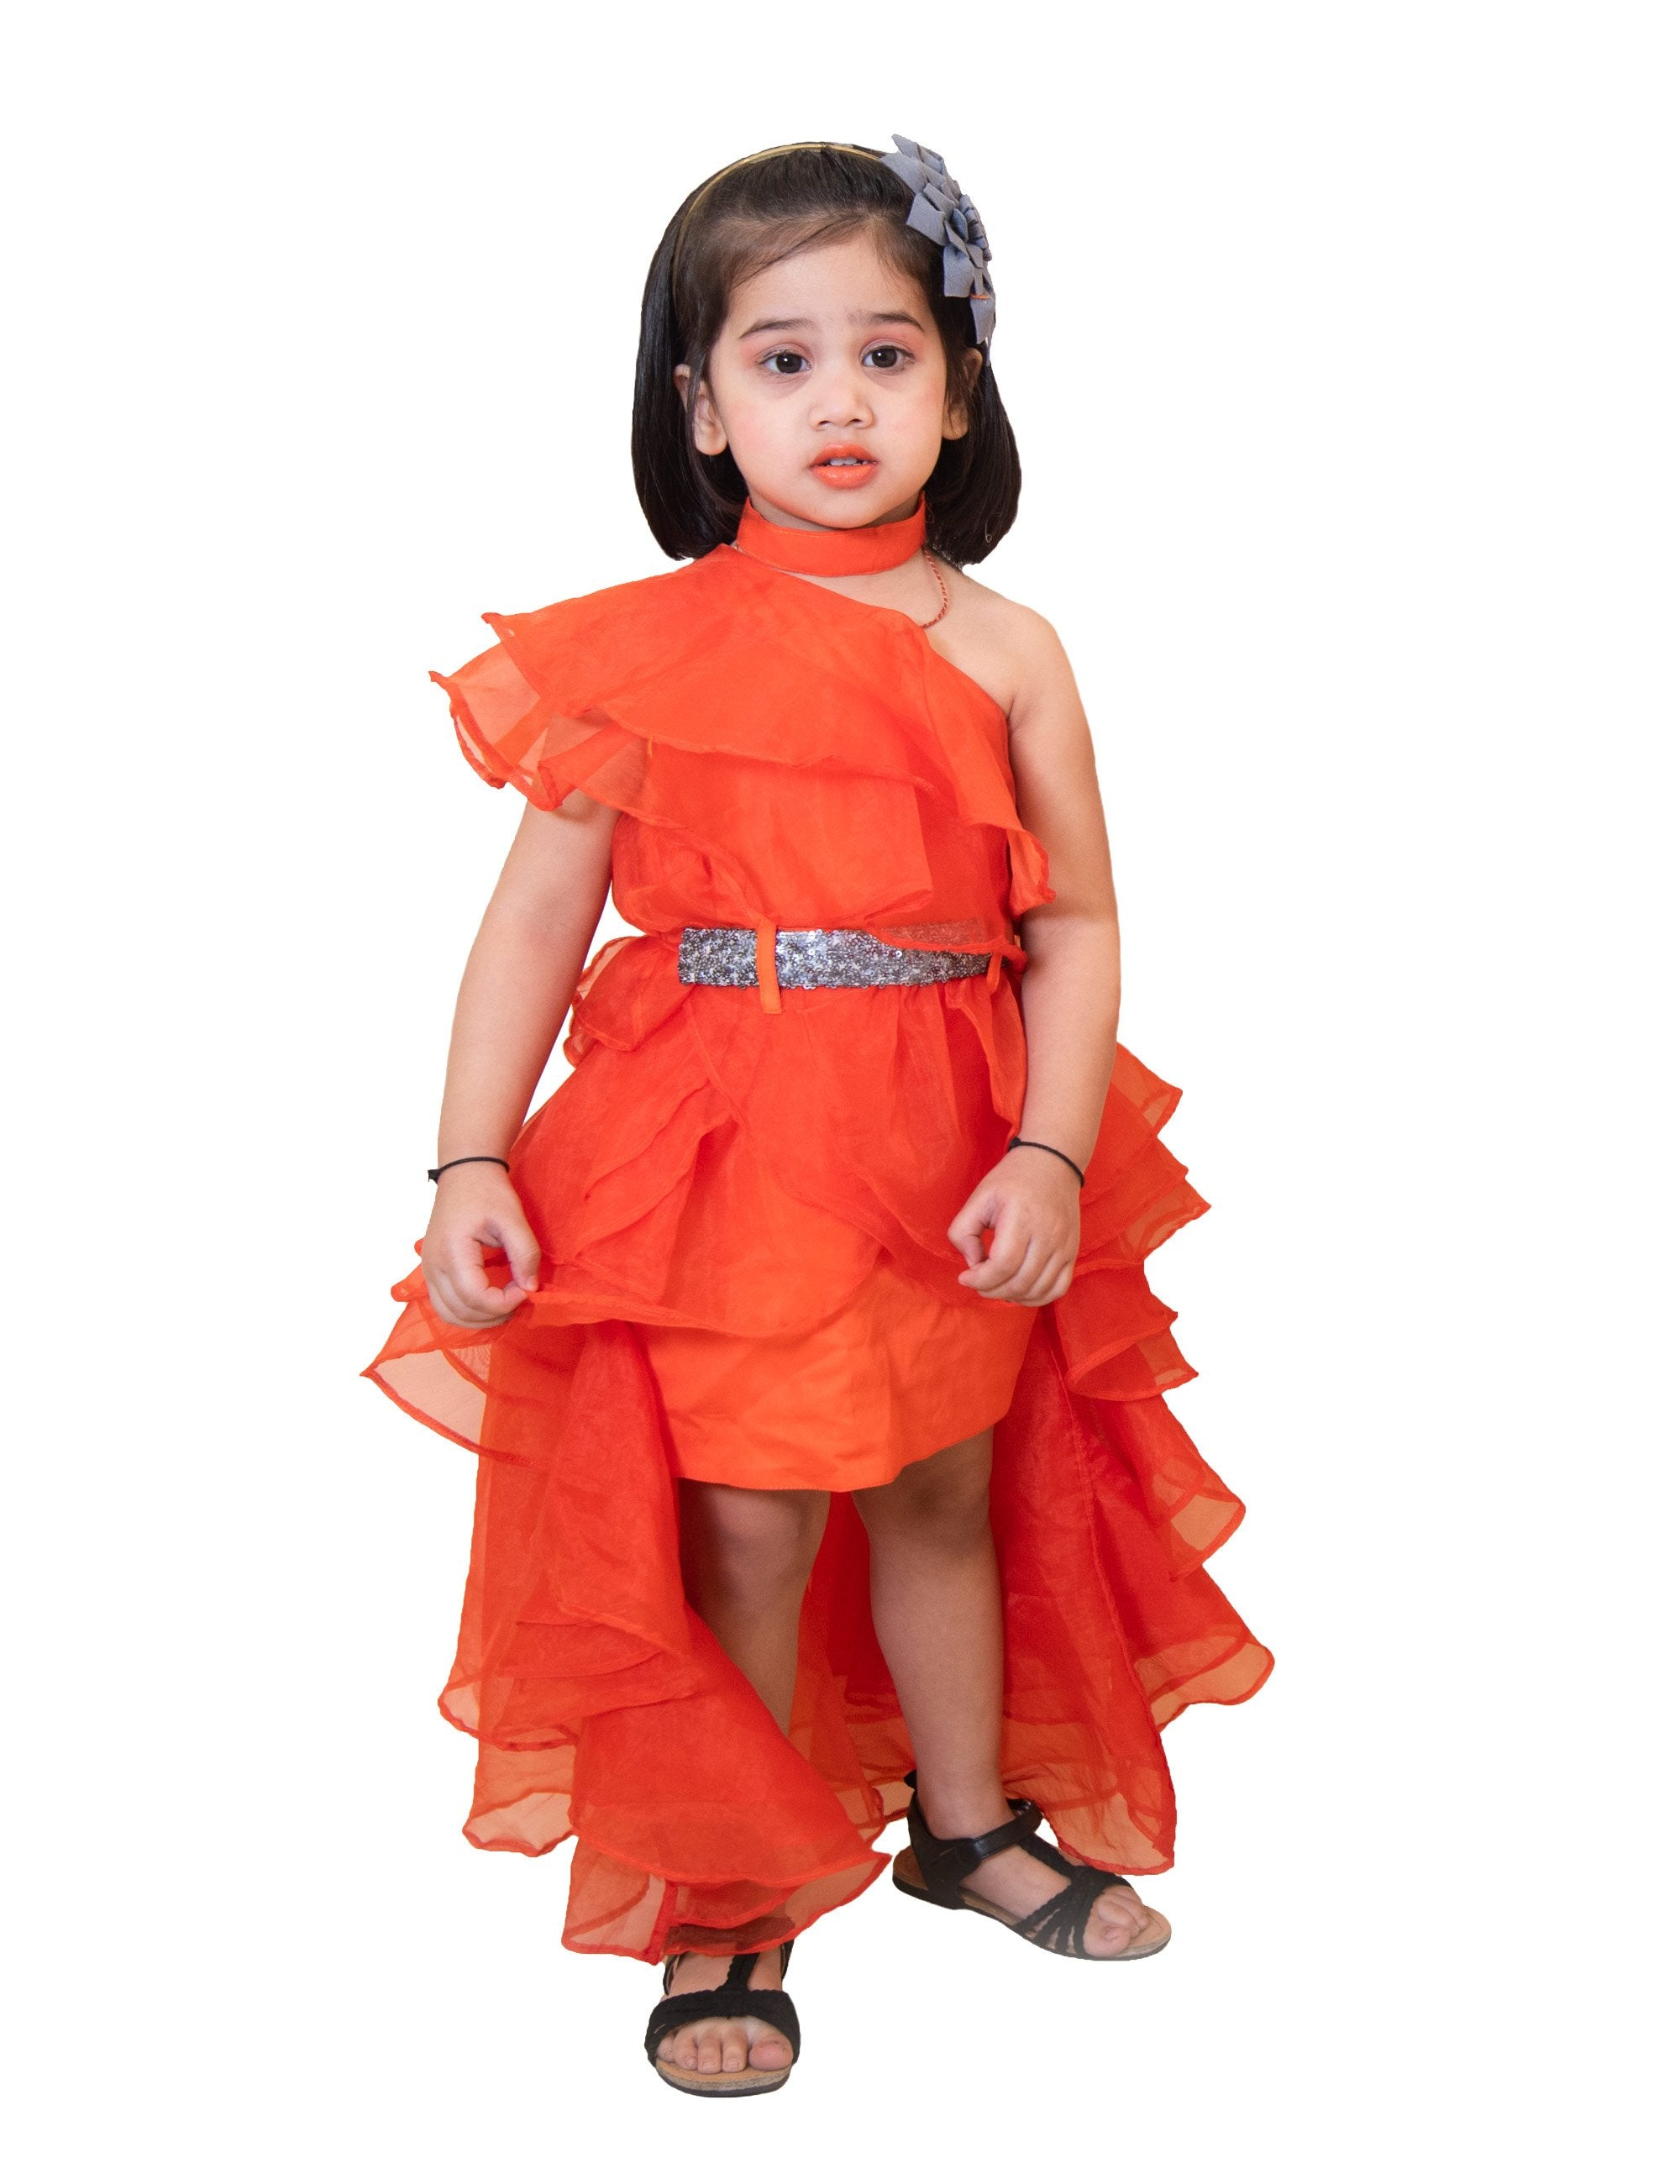 Stylish Orange Dress with Silver Belt